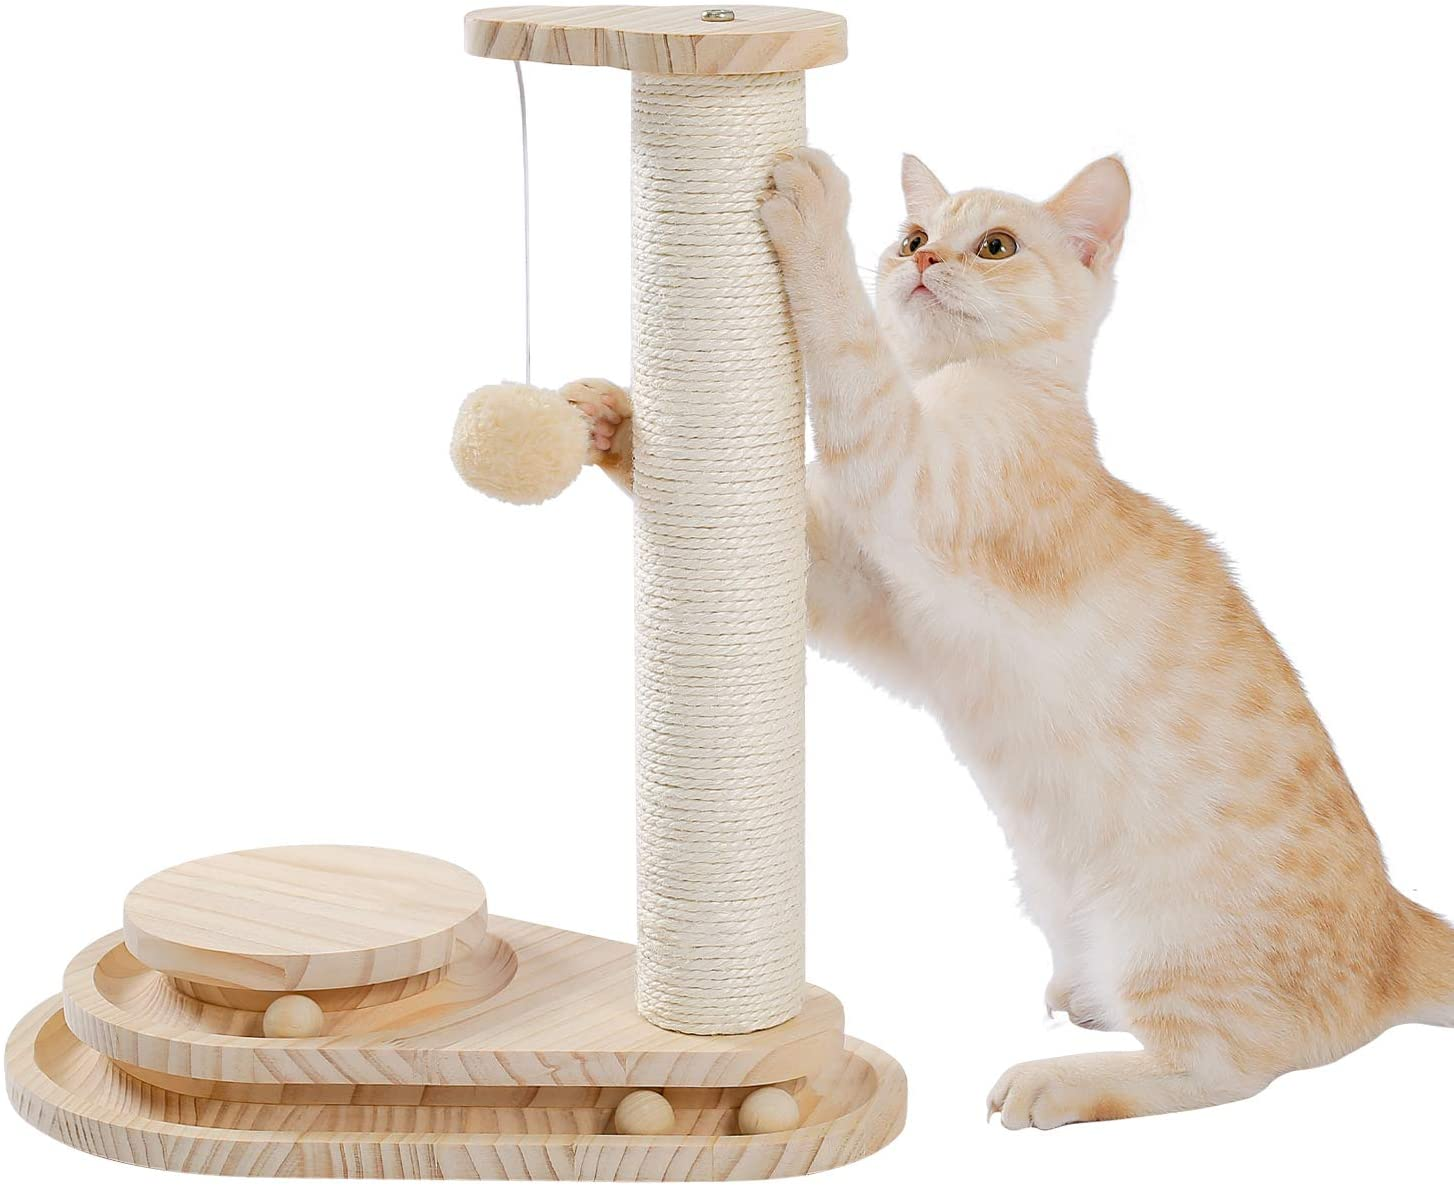 Made4Pets Two-Layer Wooden Cat Scratching Post Cat Toy Interactive Track Ball Turntable with Dangling Ball for Cat Beige